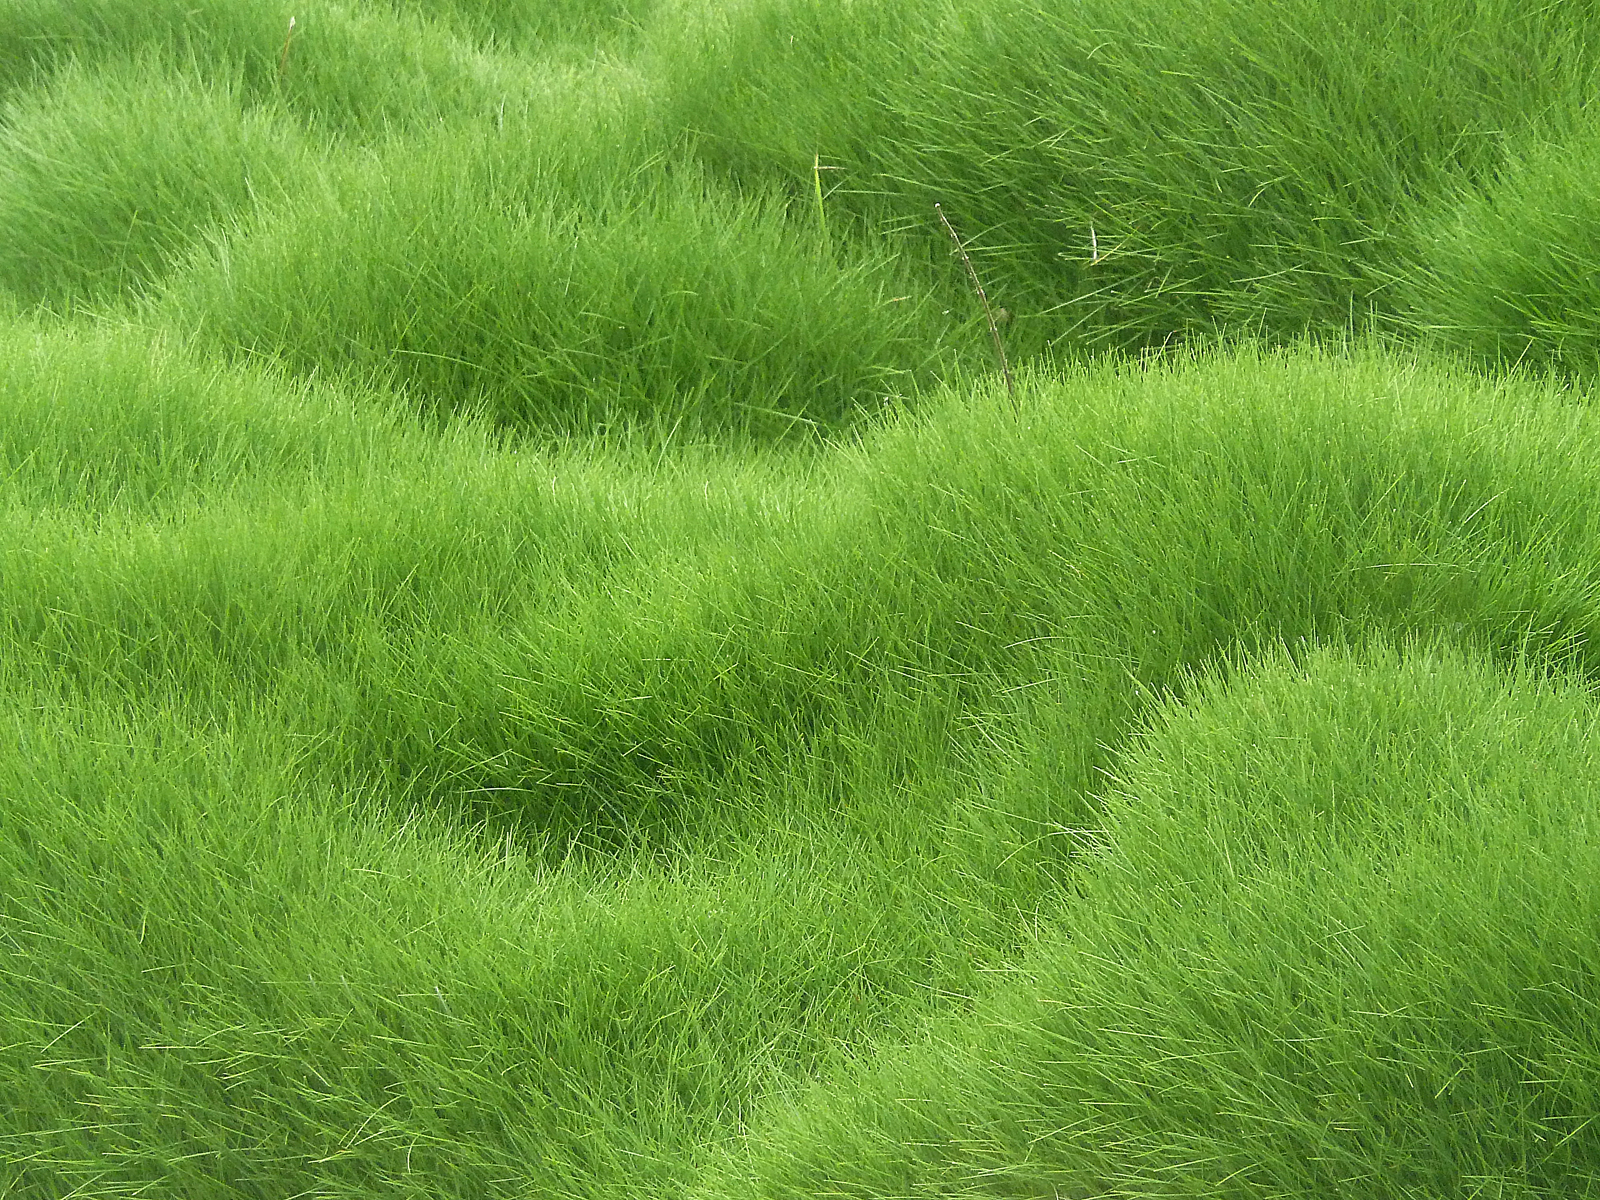 Grassy background clipart image download Grassy Background | Gallery Yopriceville - High-Quality Images and ... image download